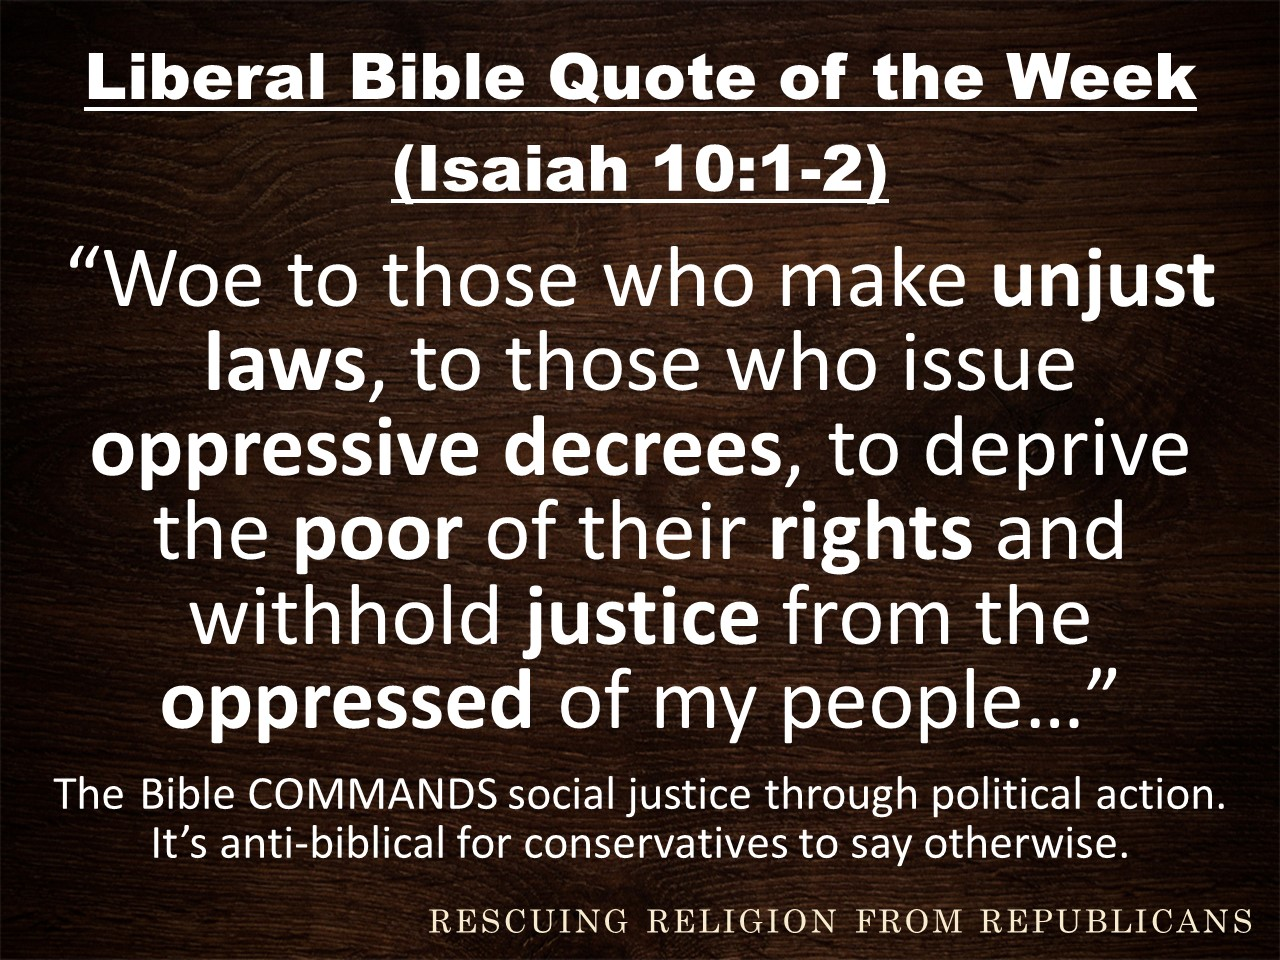 Isaiah 10.1-2 Unjust laws...deprive the poor